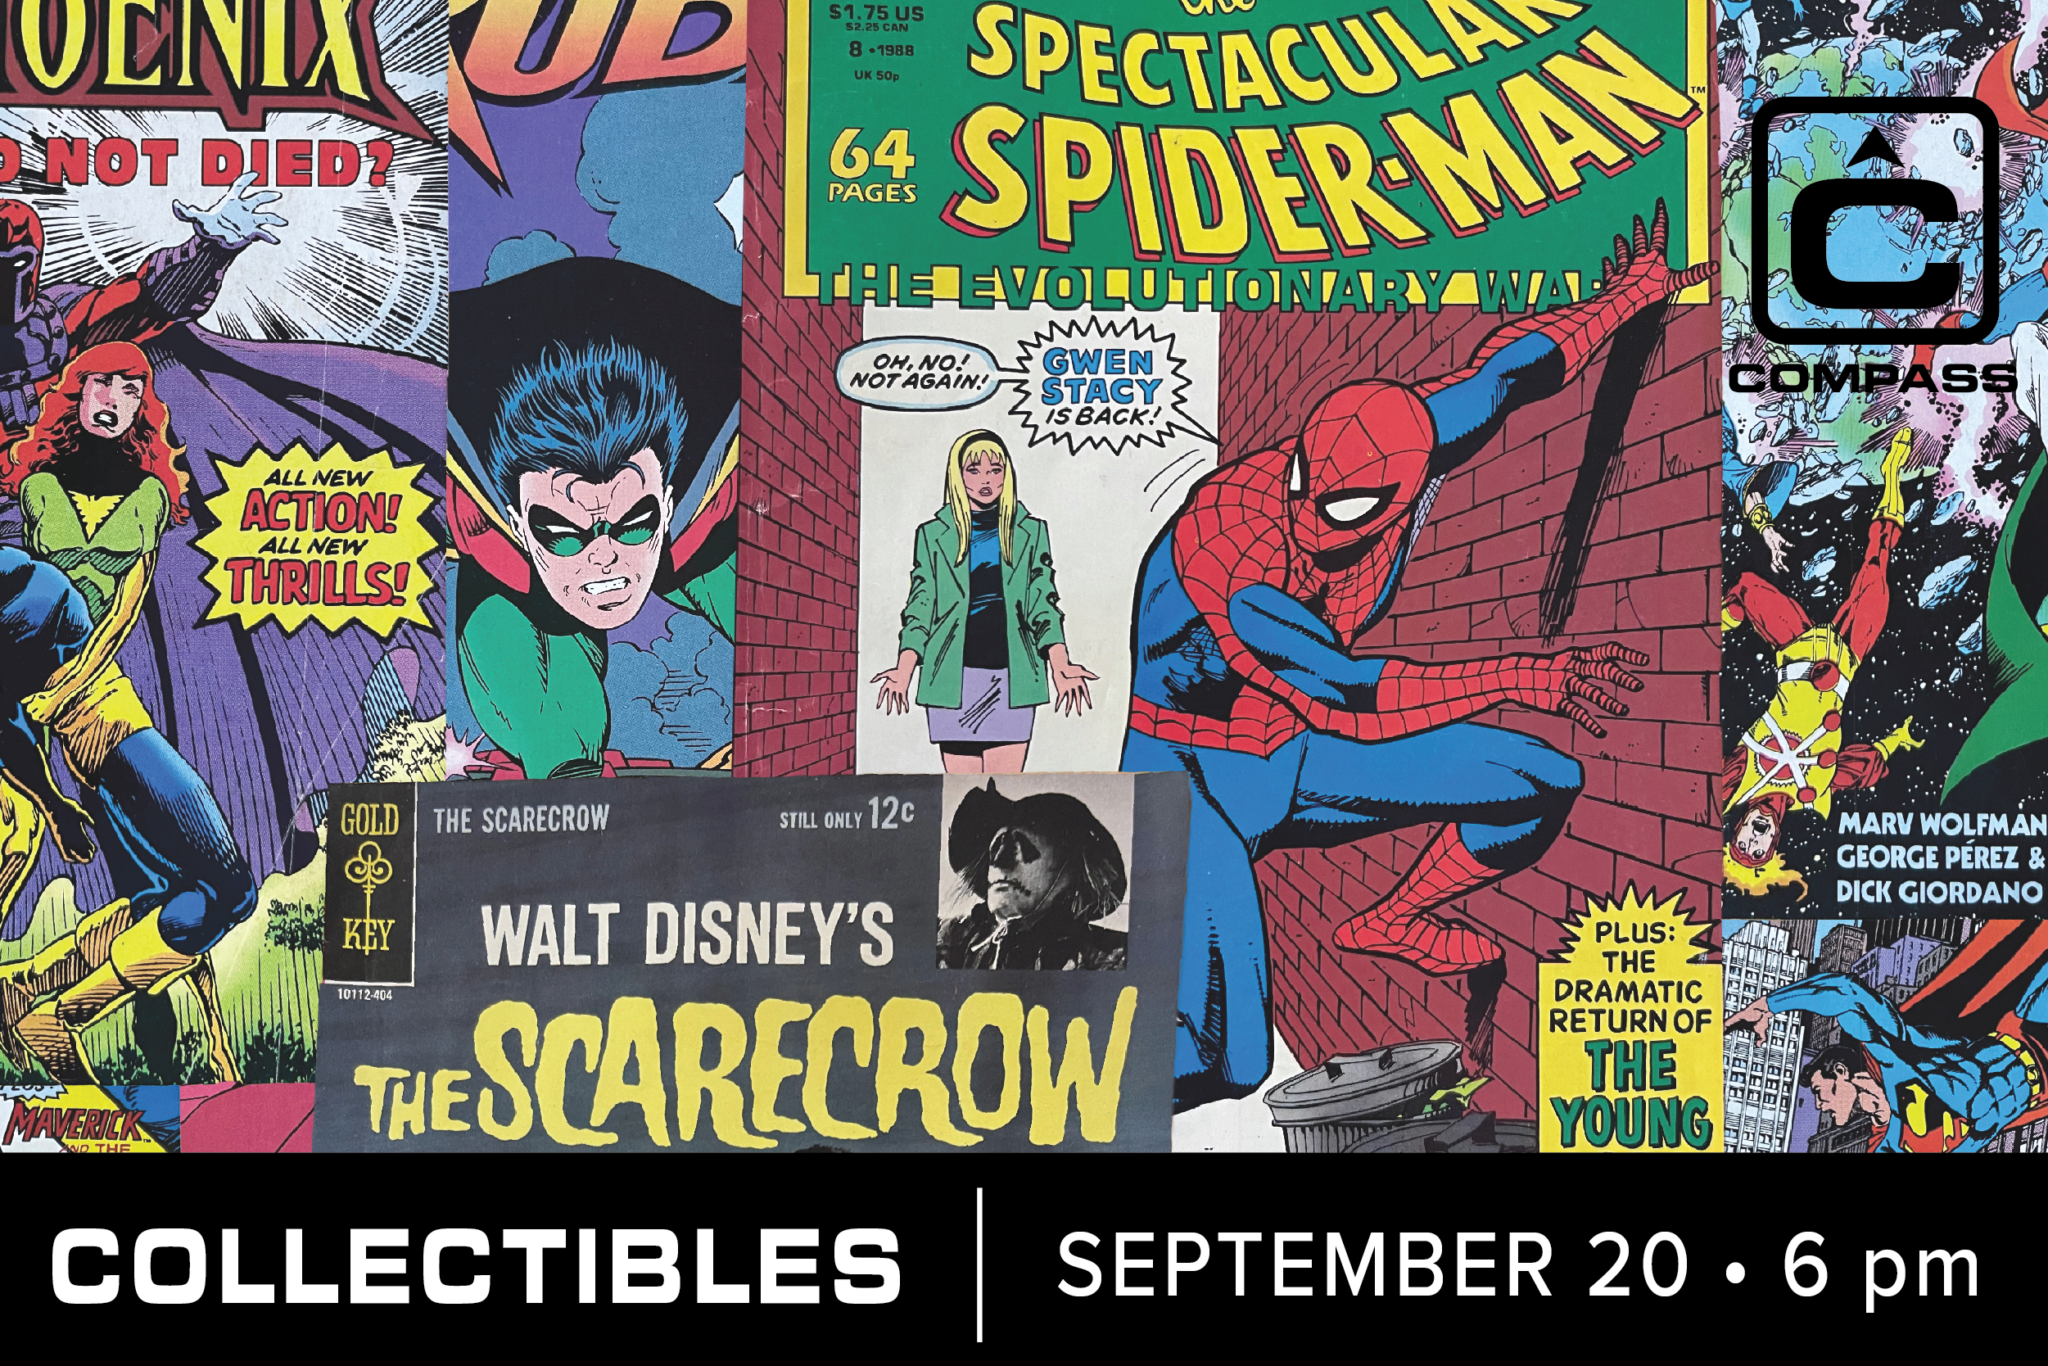 Comic Books at Auction